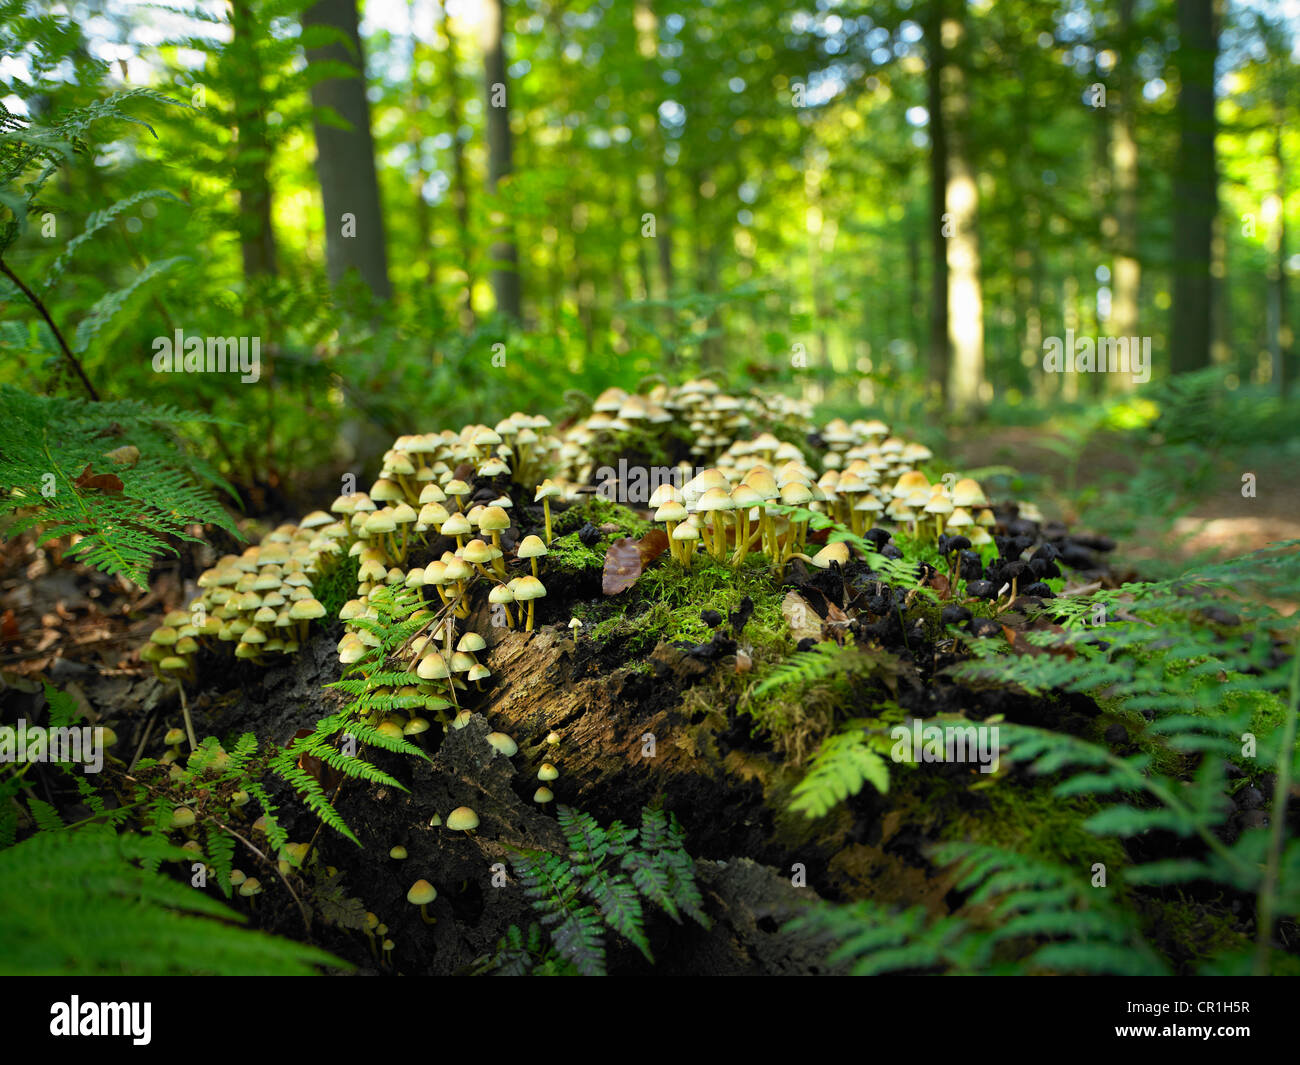 Mushrooms growing on log in forest - Stock Image